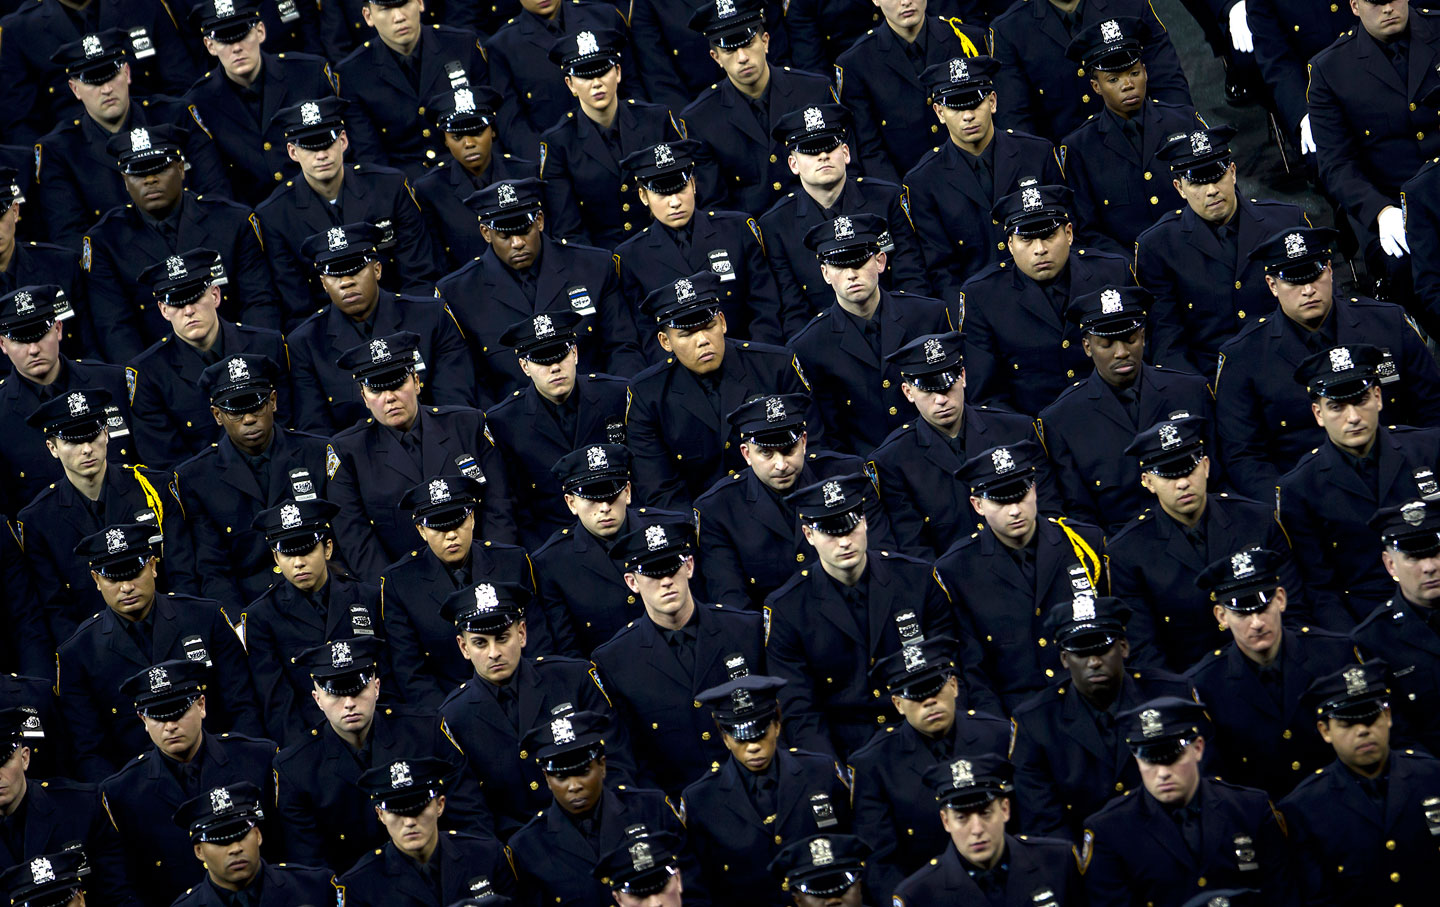 NYPD Graduating Ceremony